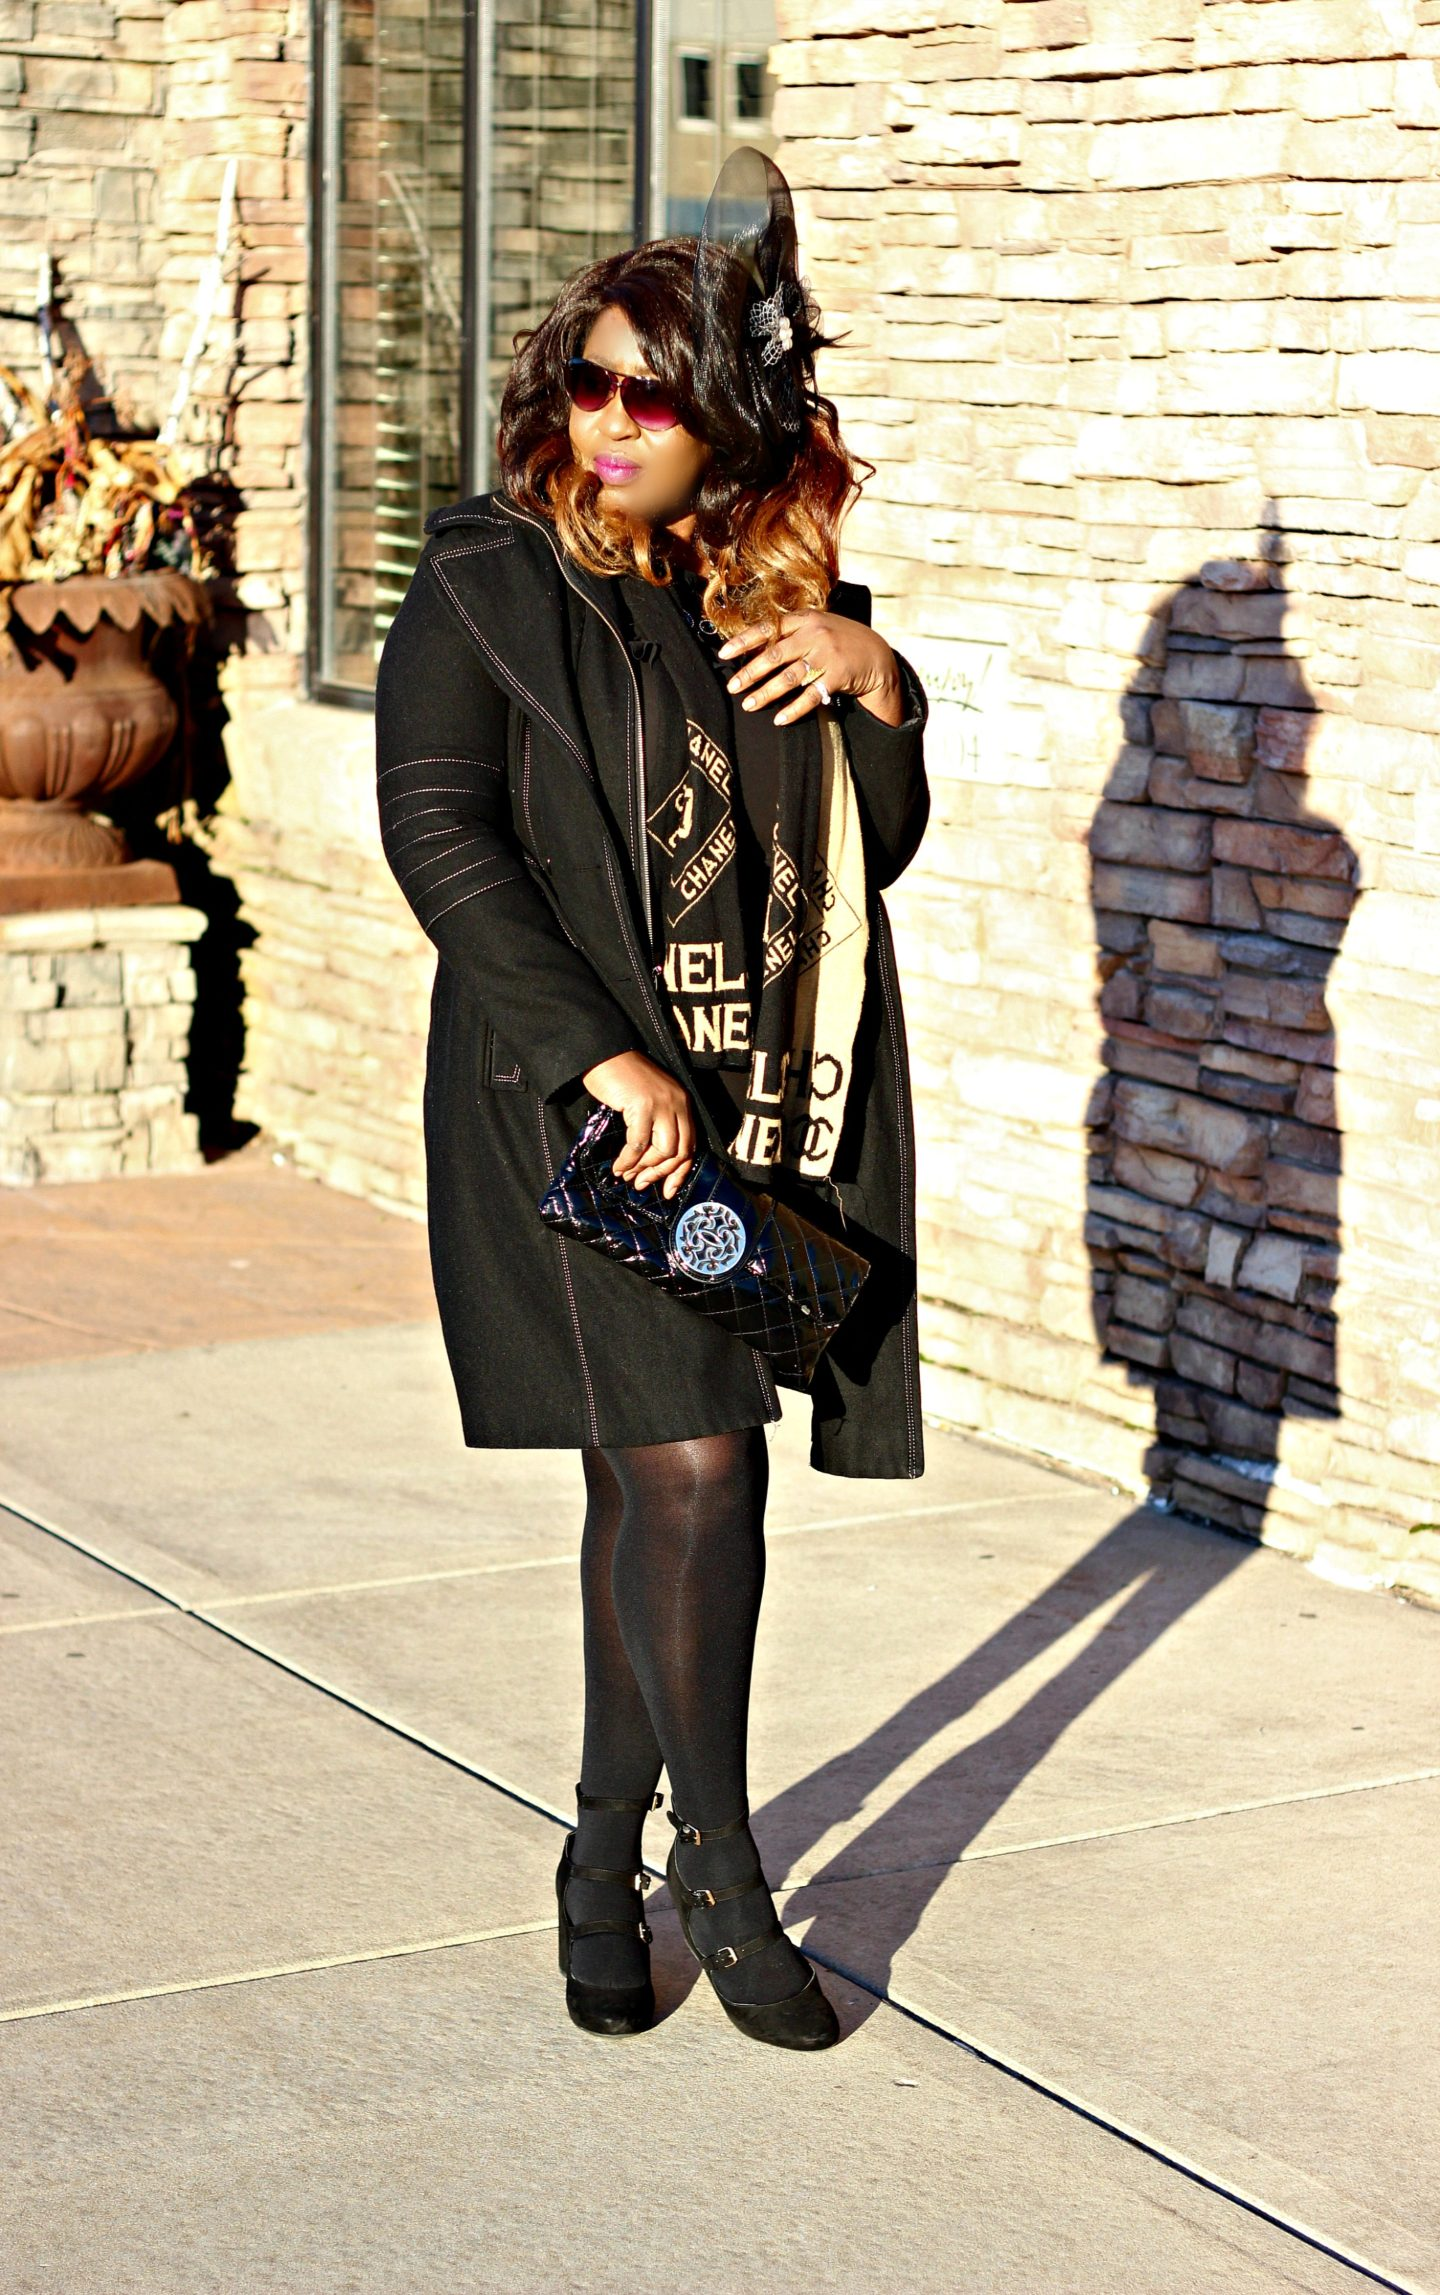 Winter-Black-outfit